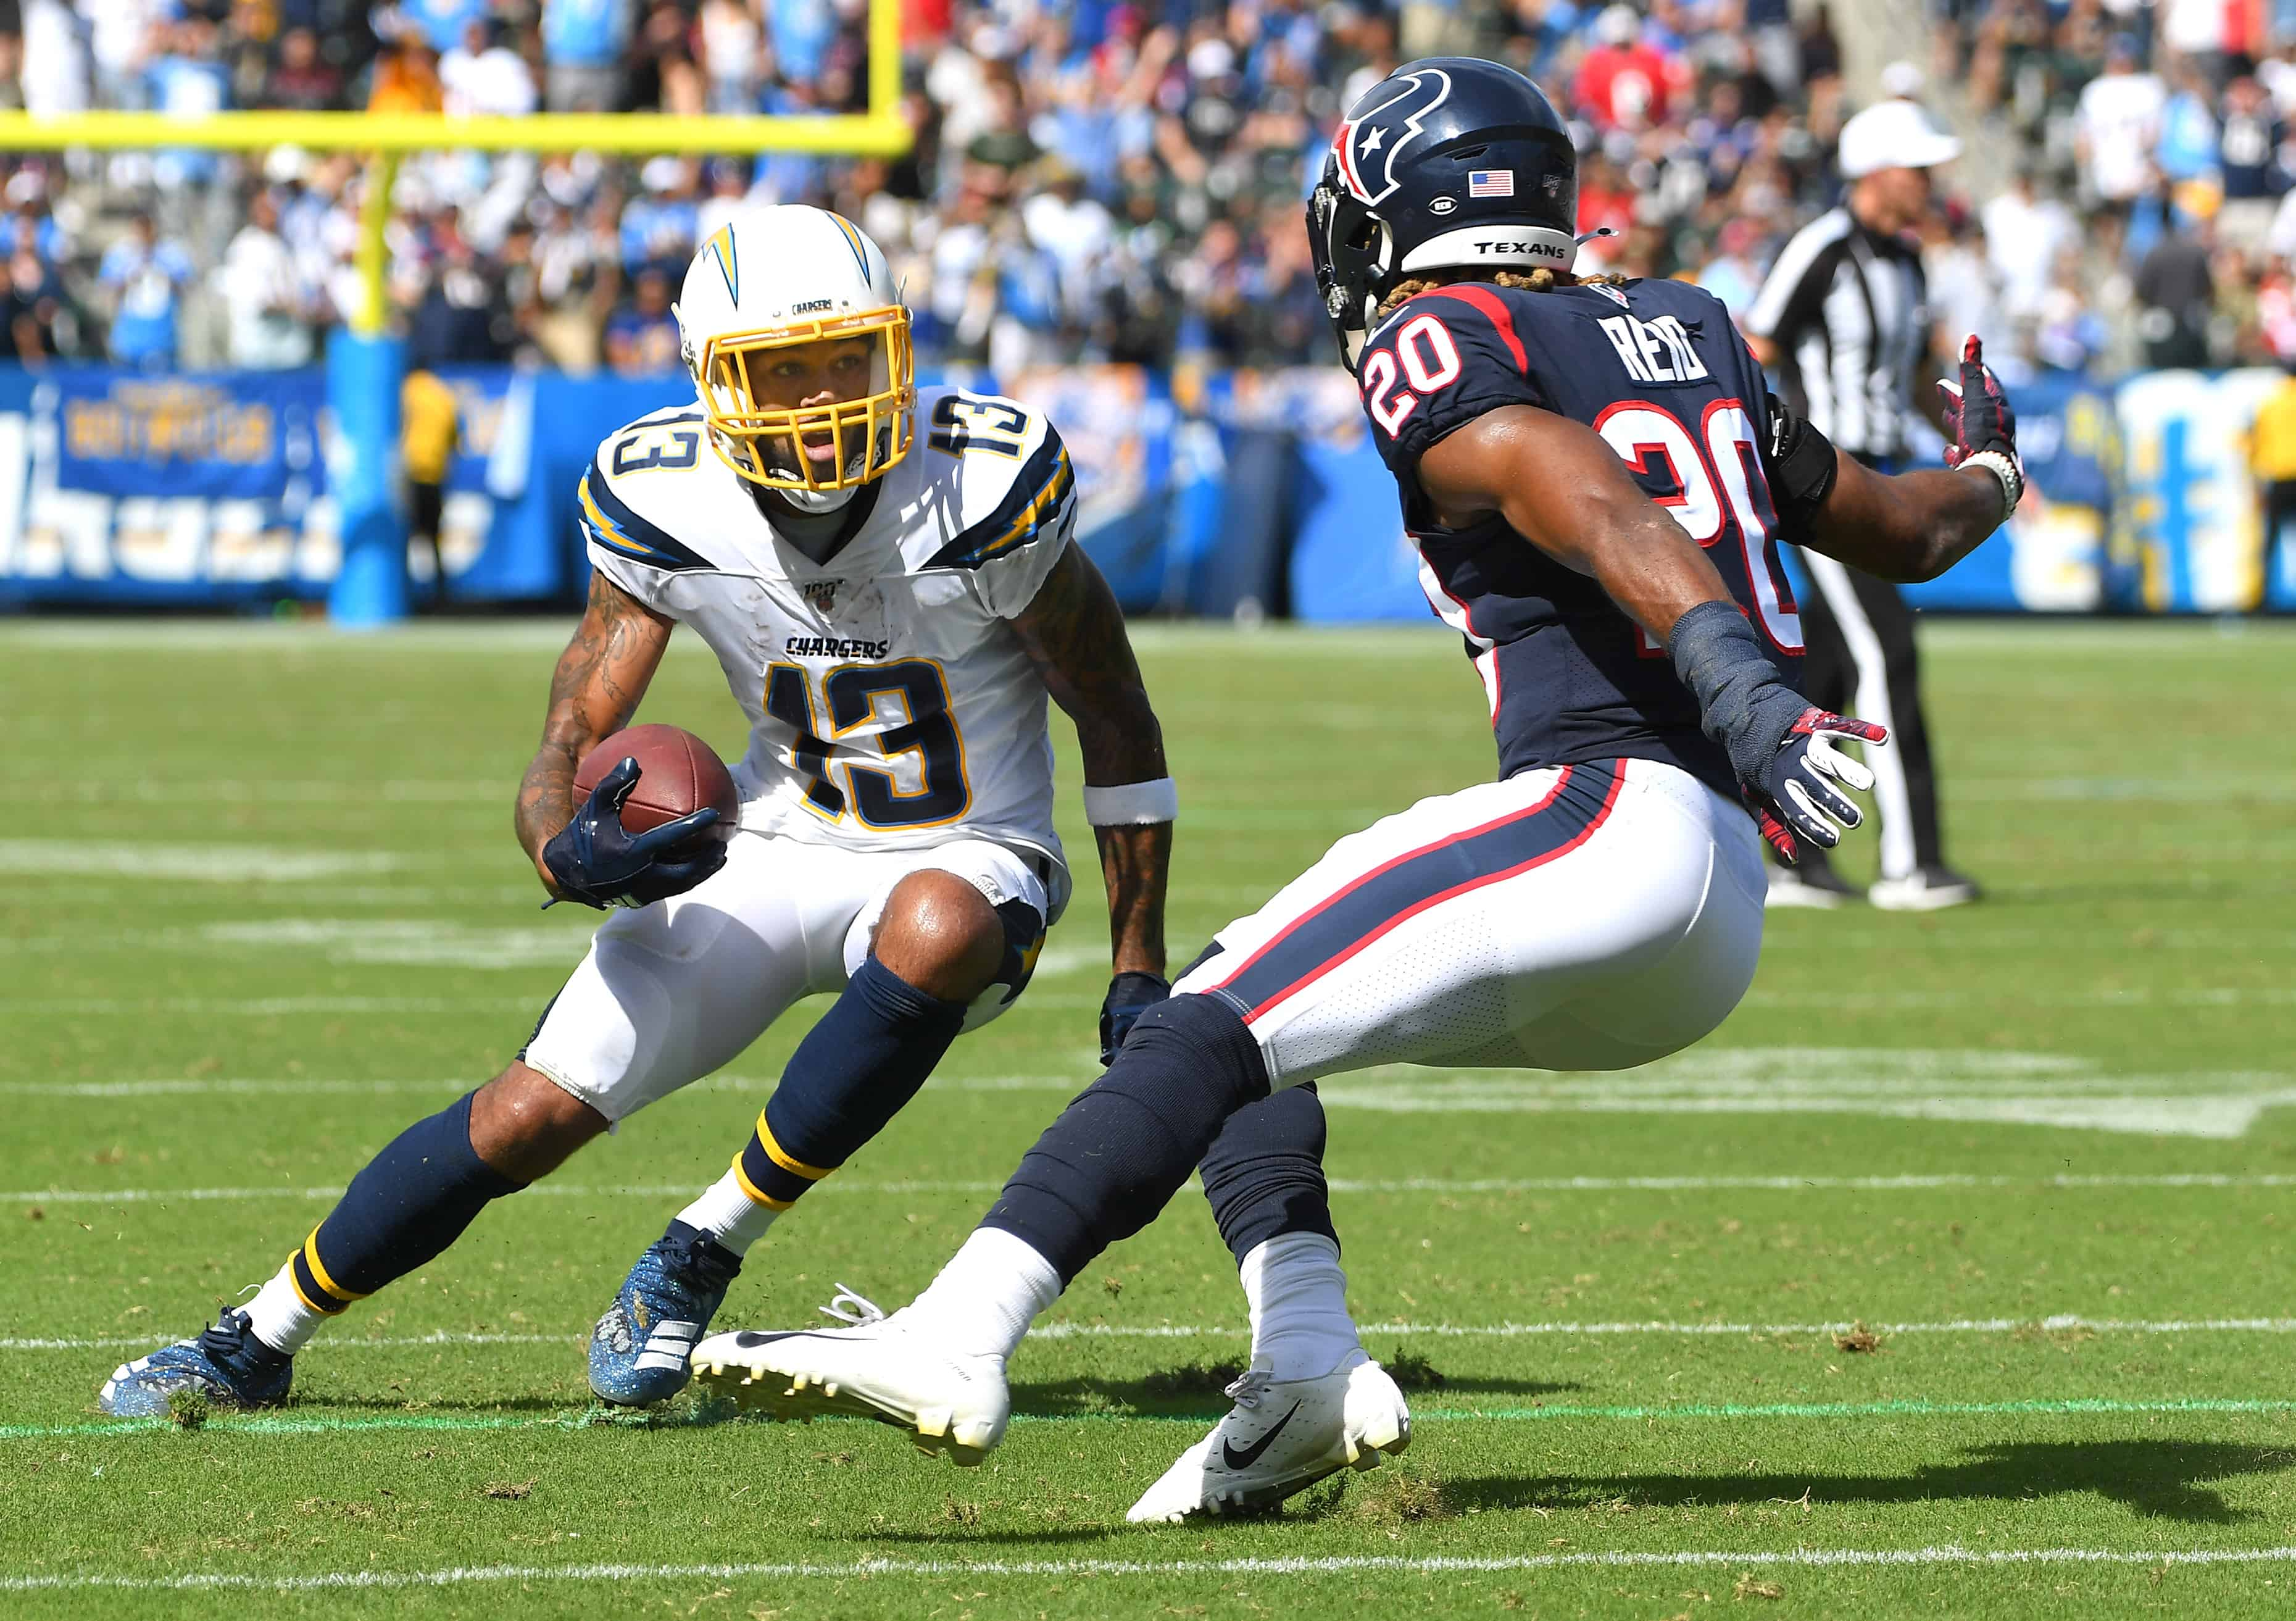 Keenan Allen sets up broken tackle because he's really good